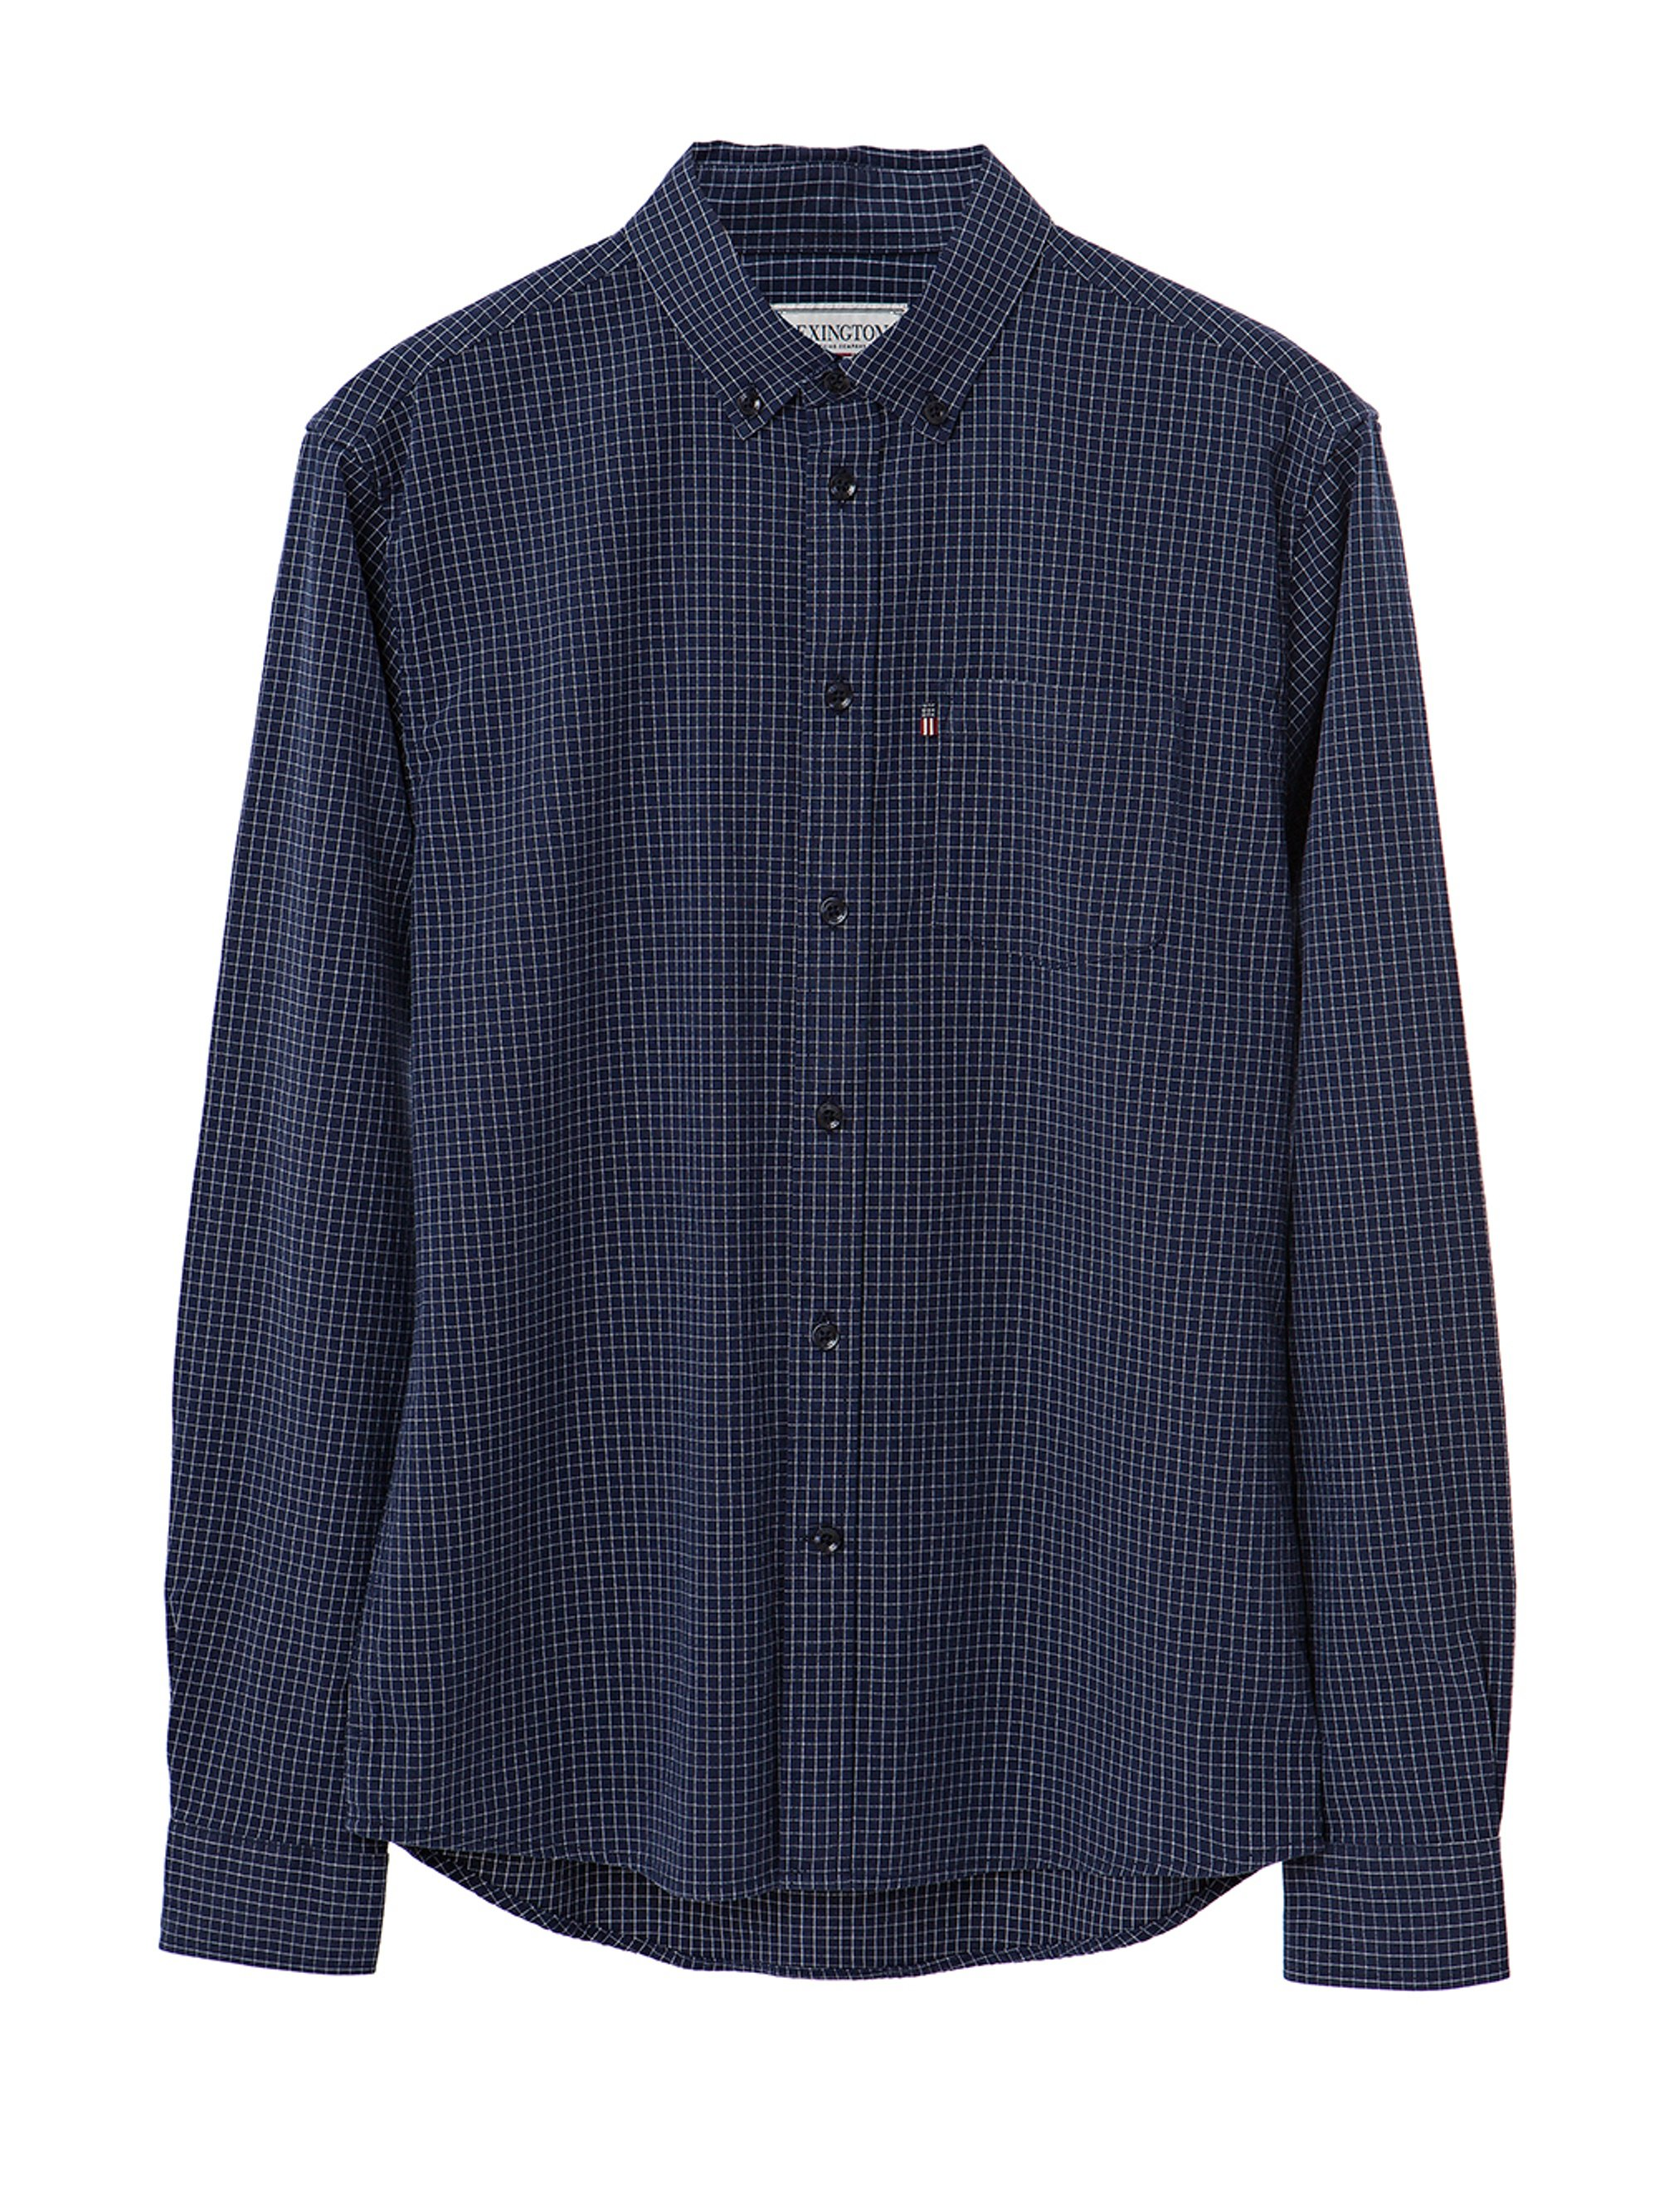 Kyle Oxford Shirt, Blue/White Check